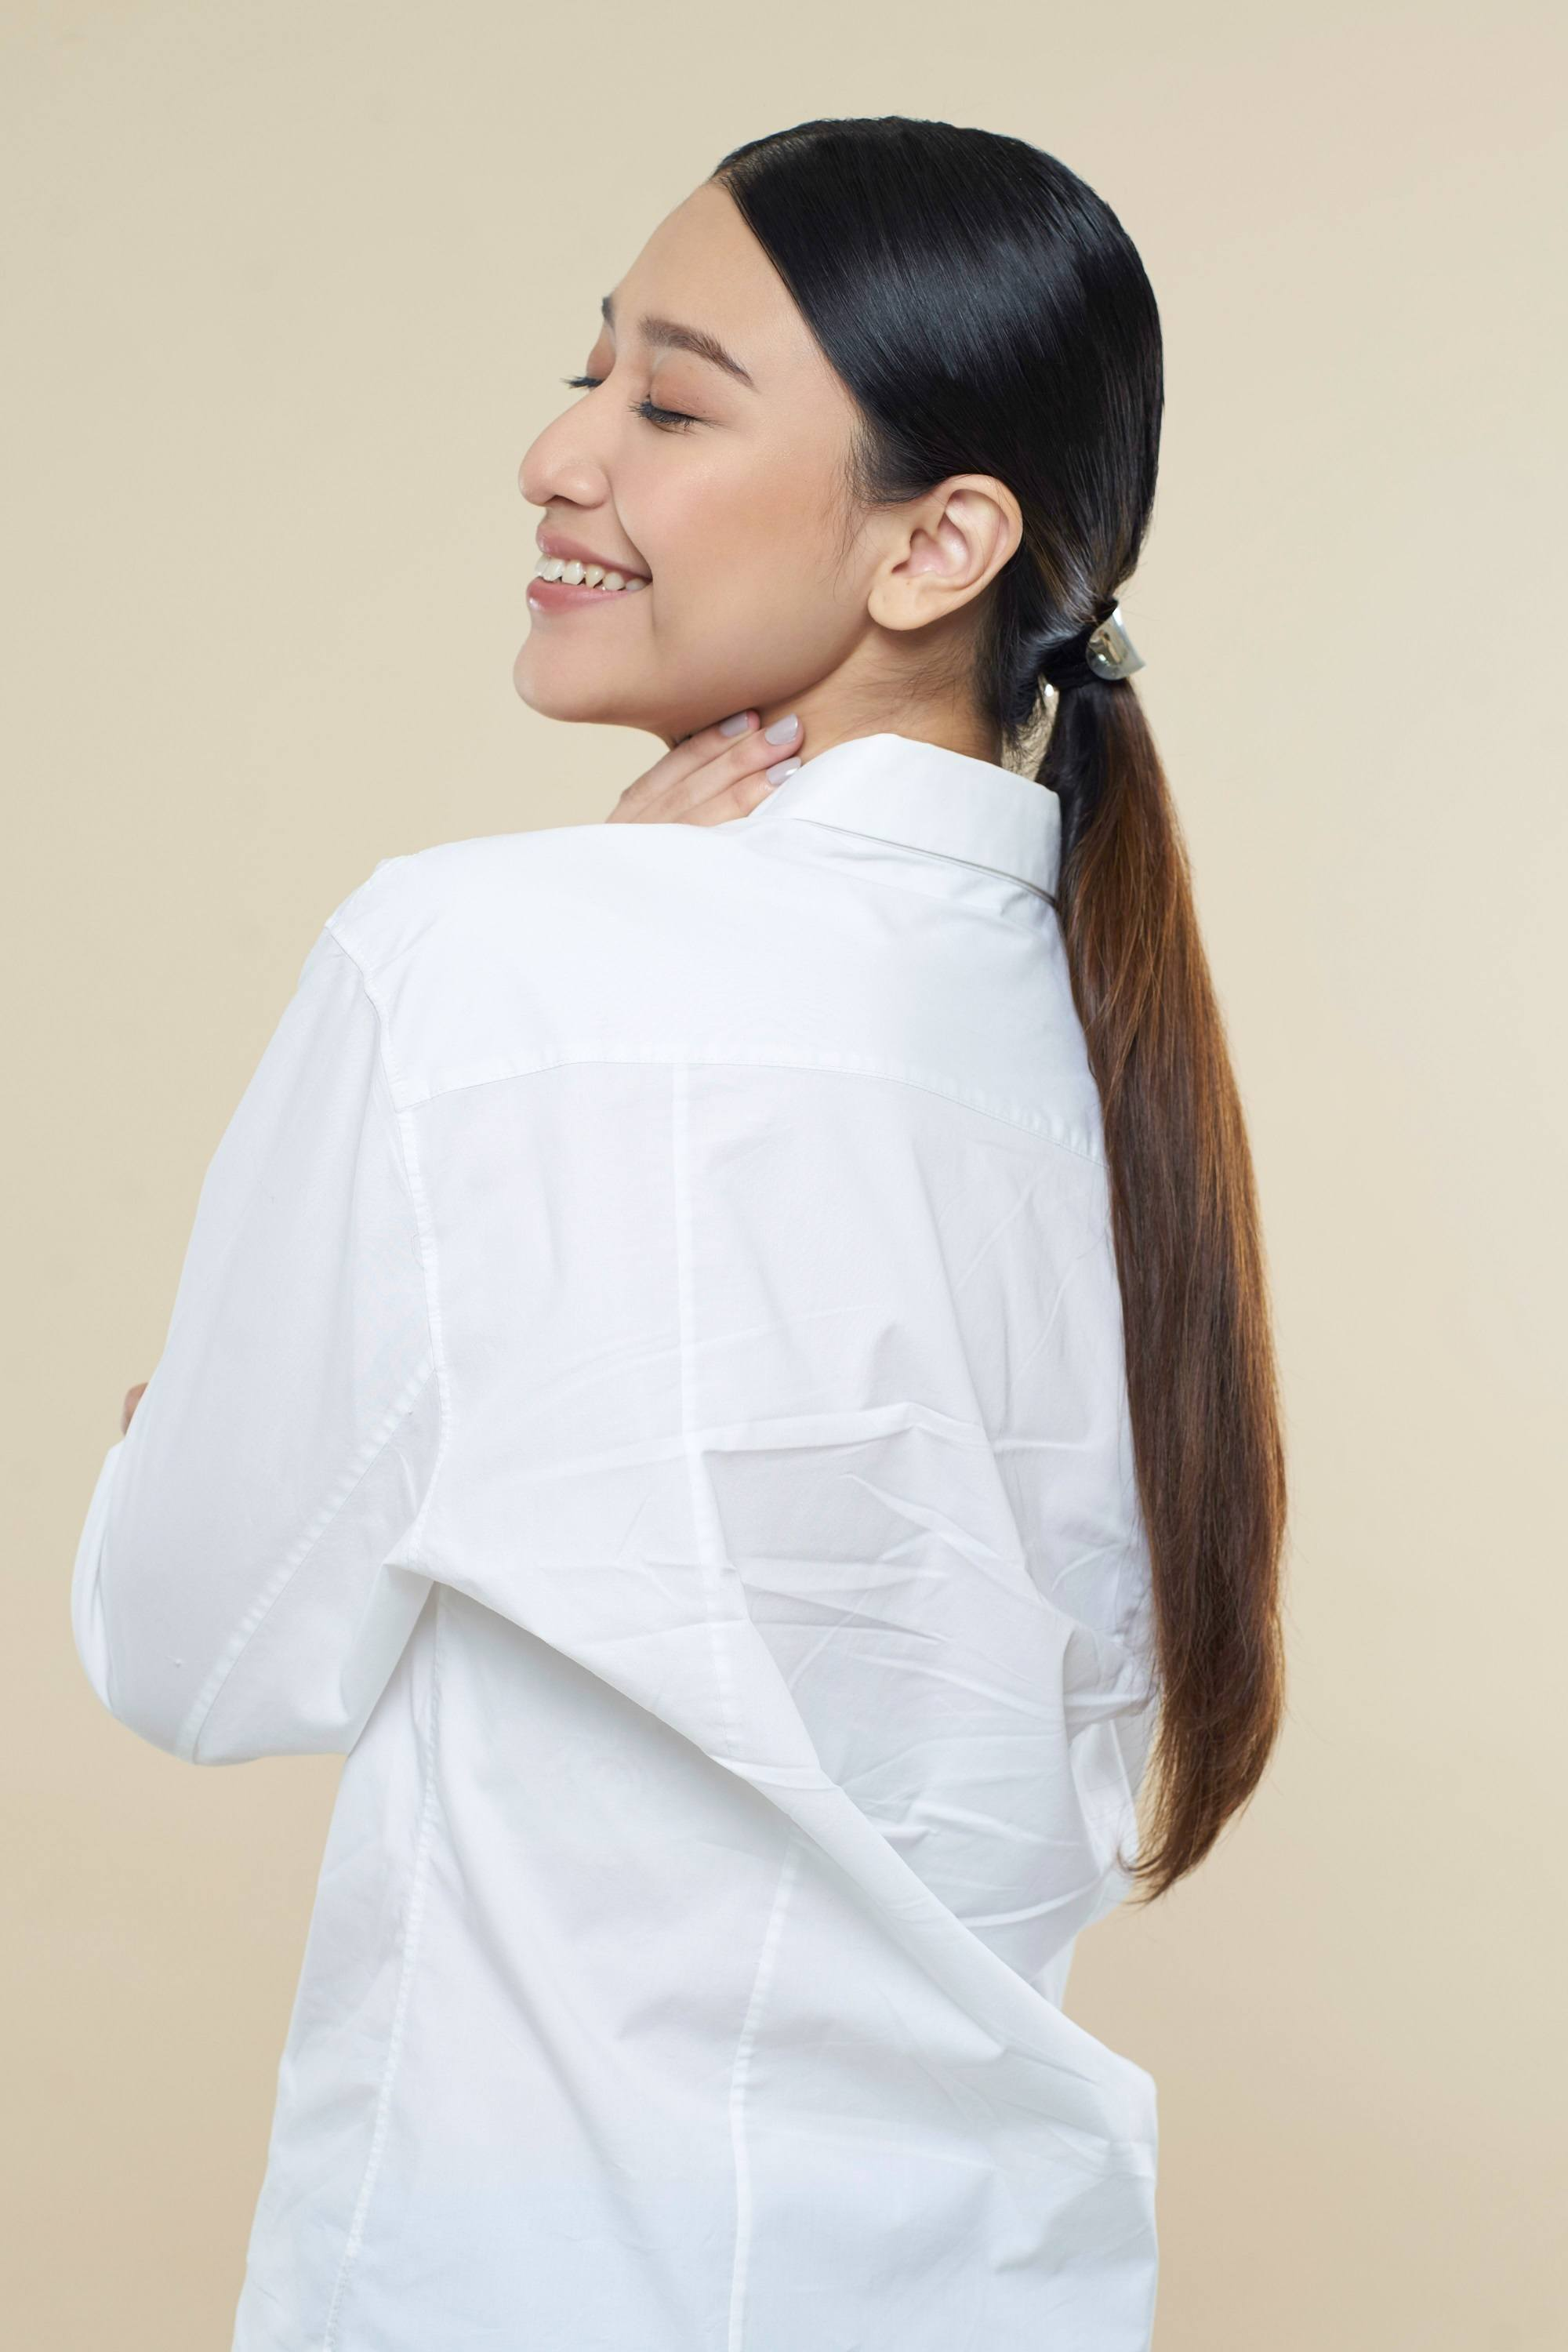 Easy commuter-friendly hairstyles: Side view of an Asian woman with long dark hair in a low ponytail wearing a white blouse